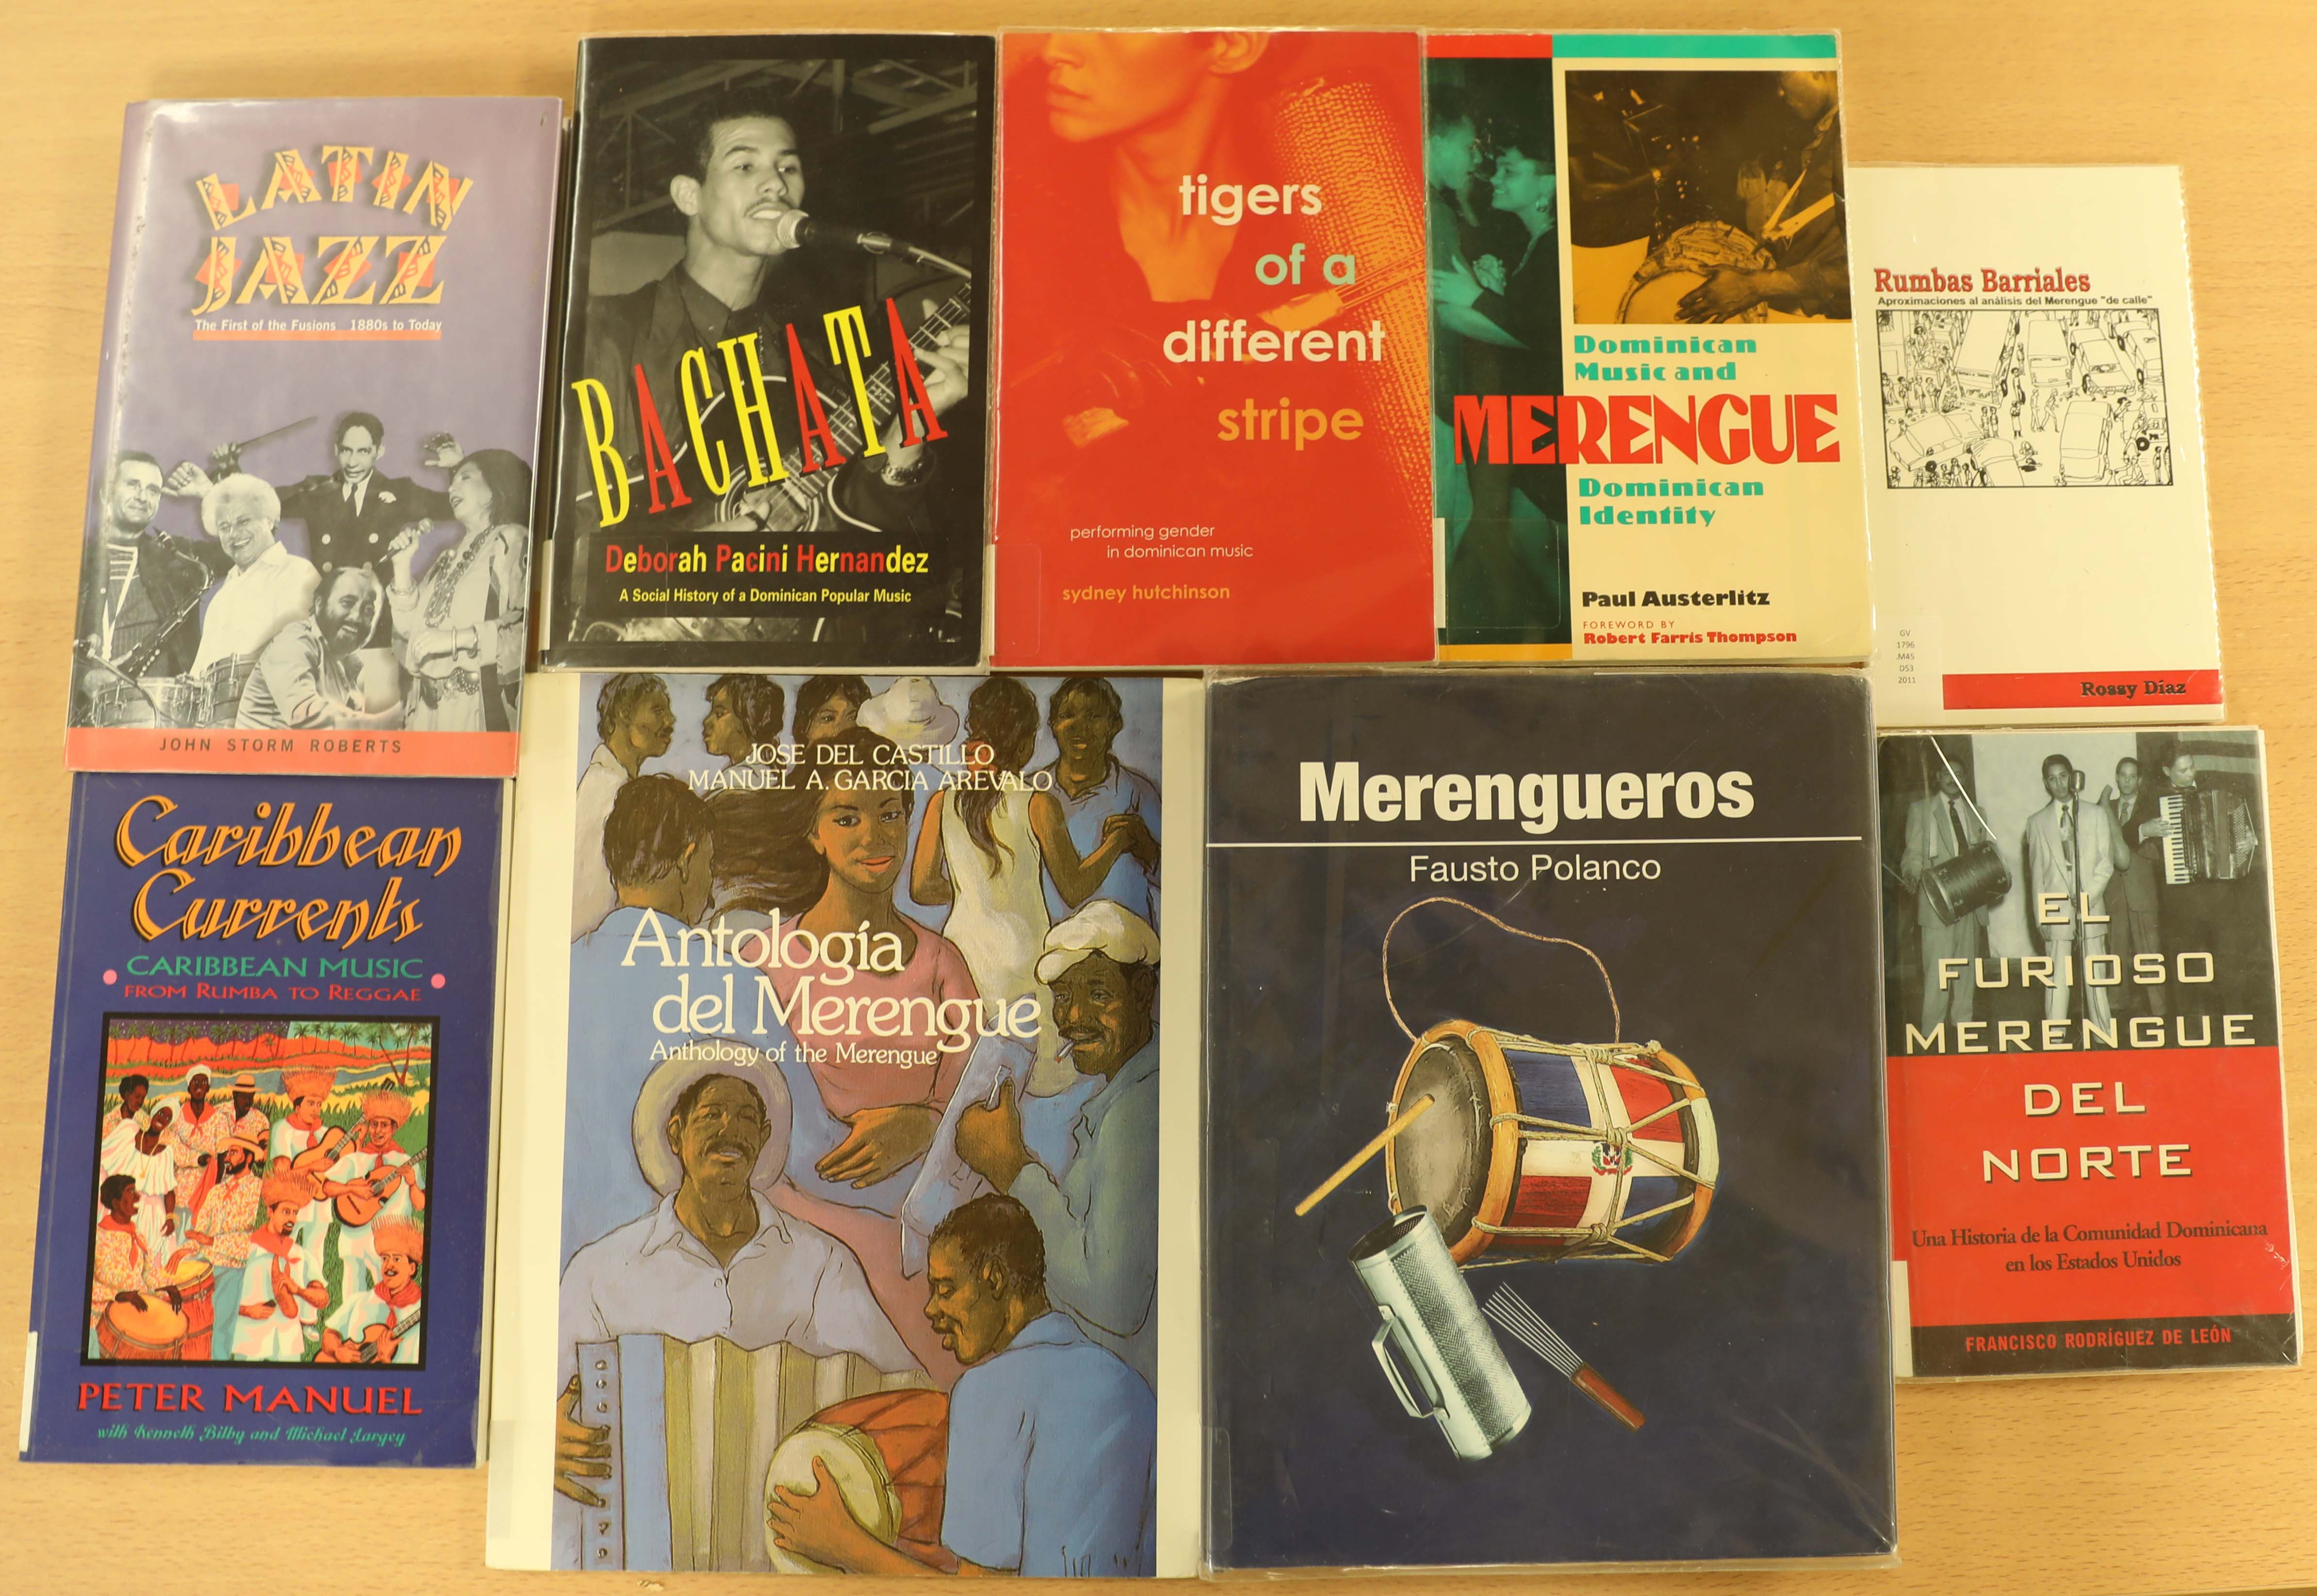 A Collage of Books on Dominican Music